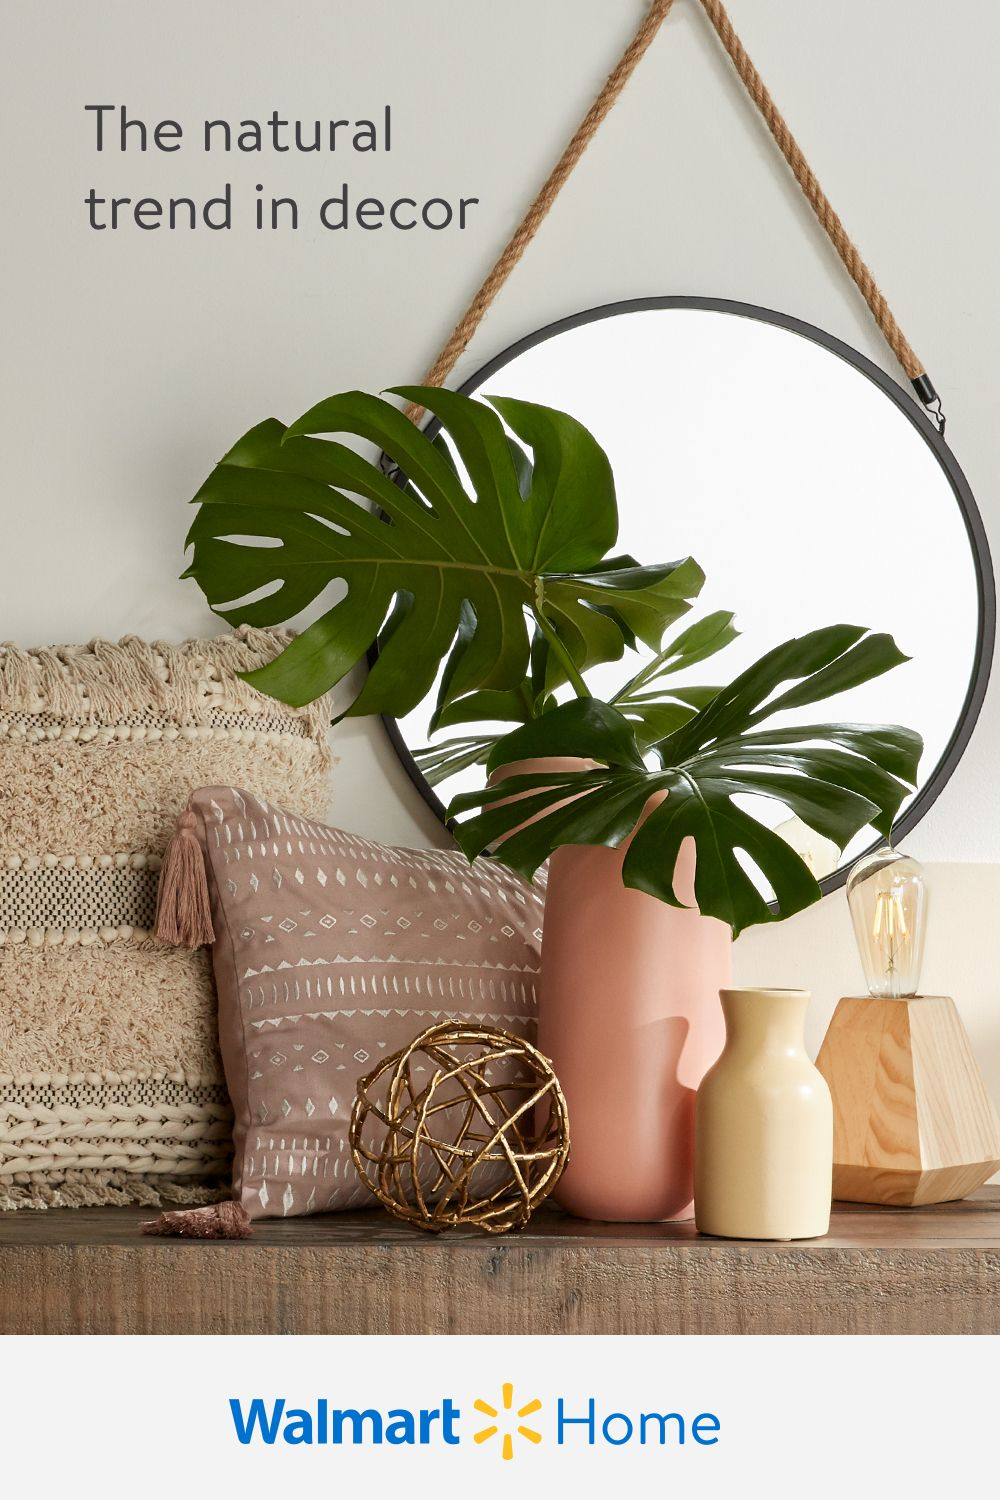 Enliven every room with decor inspired by natural textures, tones, & materials. Shop Walmart for affordable planters, rugs, textiles, & more for spaces with down-to-earth style.